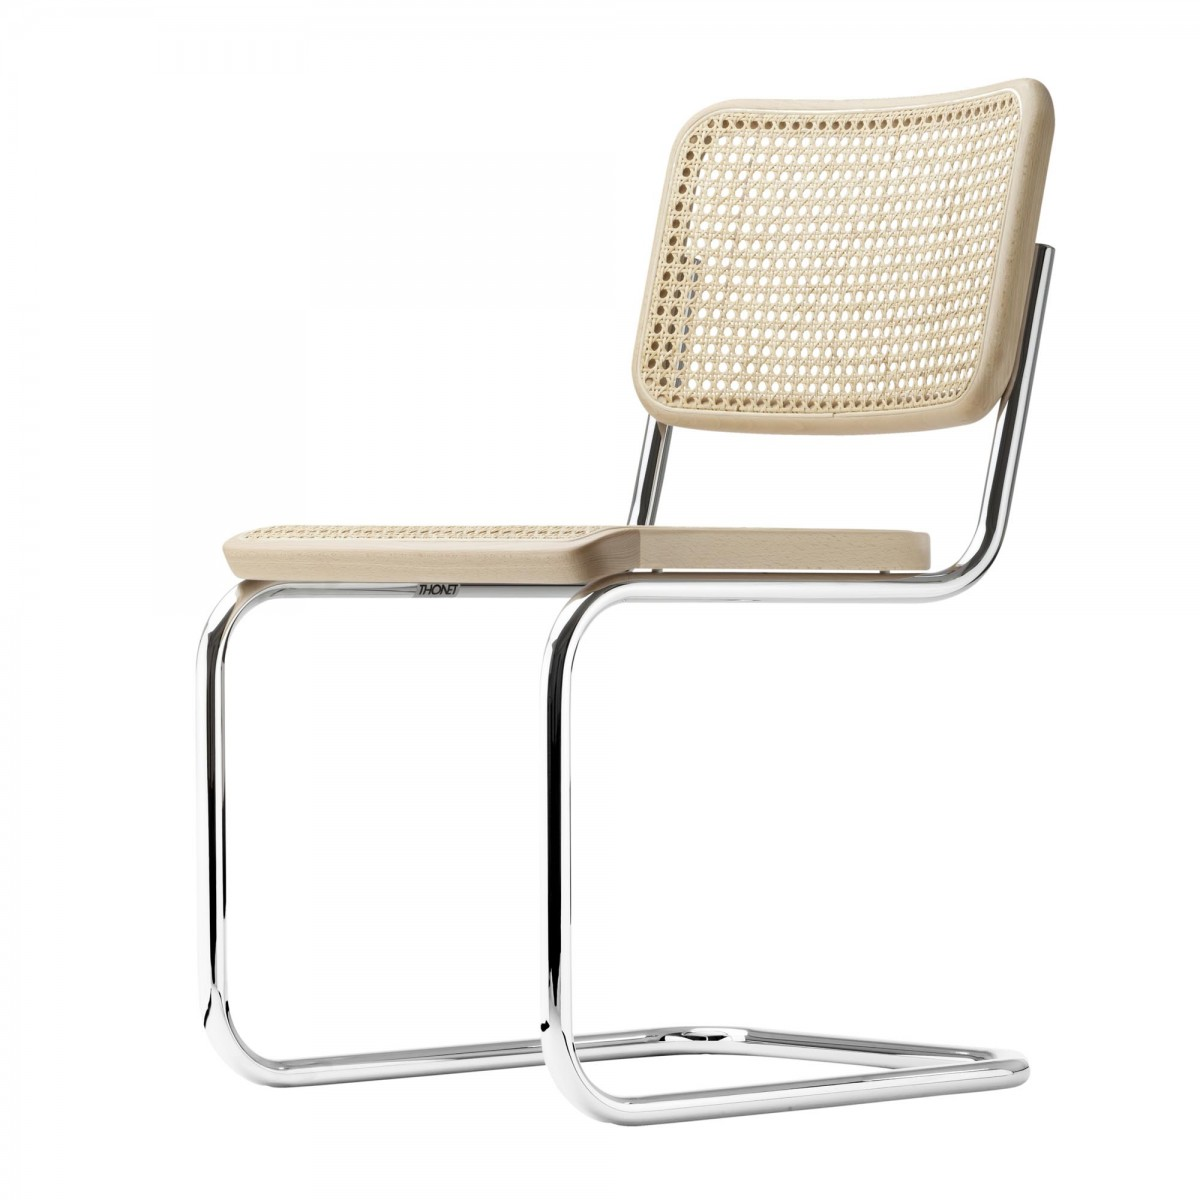 Thonet S32 S32 Chair Natural Beech Thonet